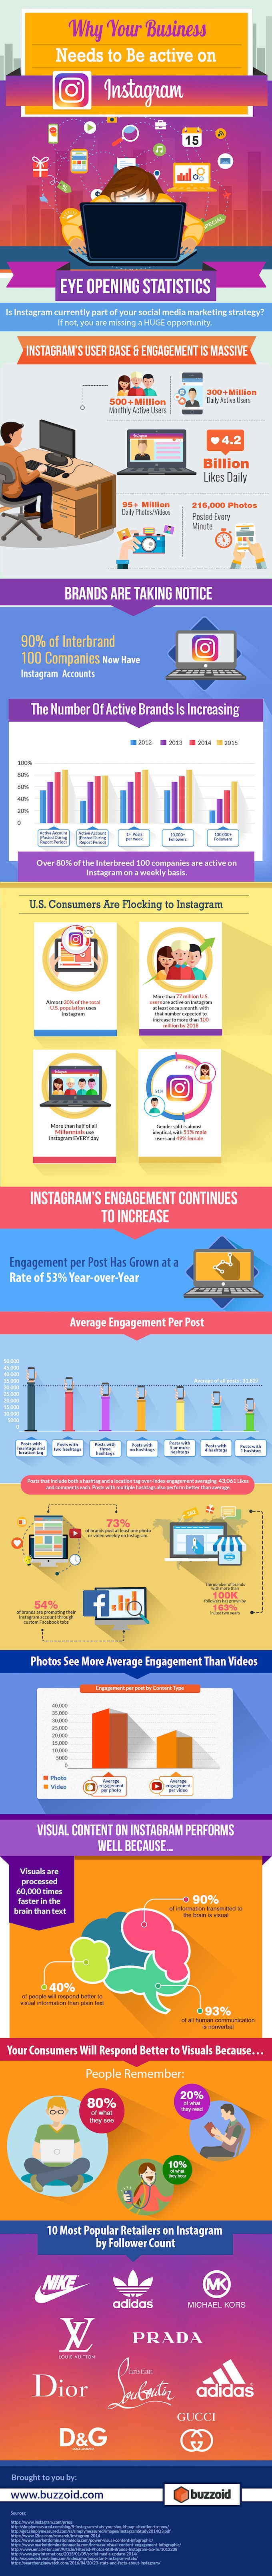 instagram-stats-infographic